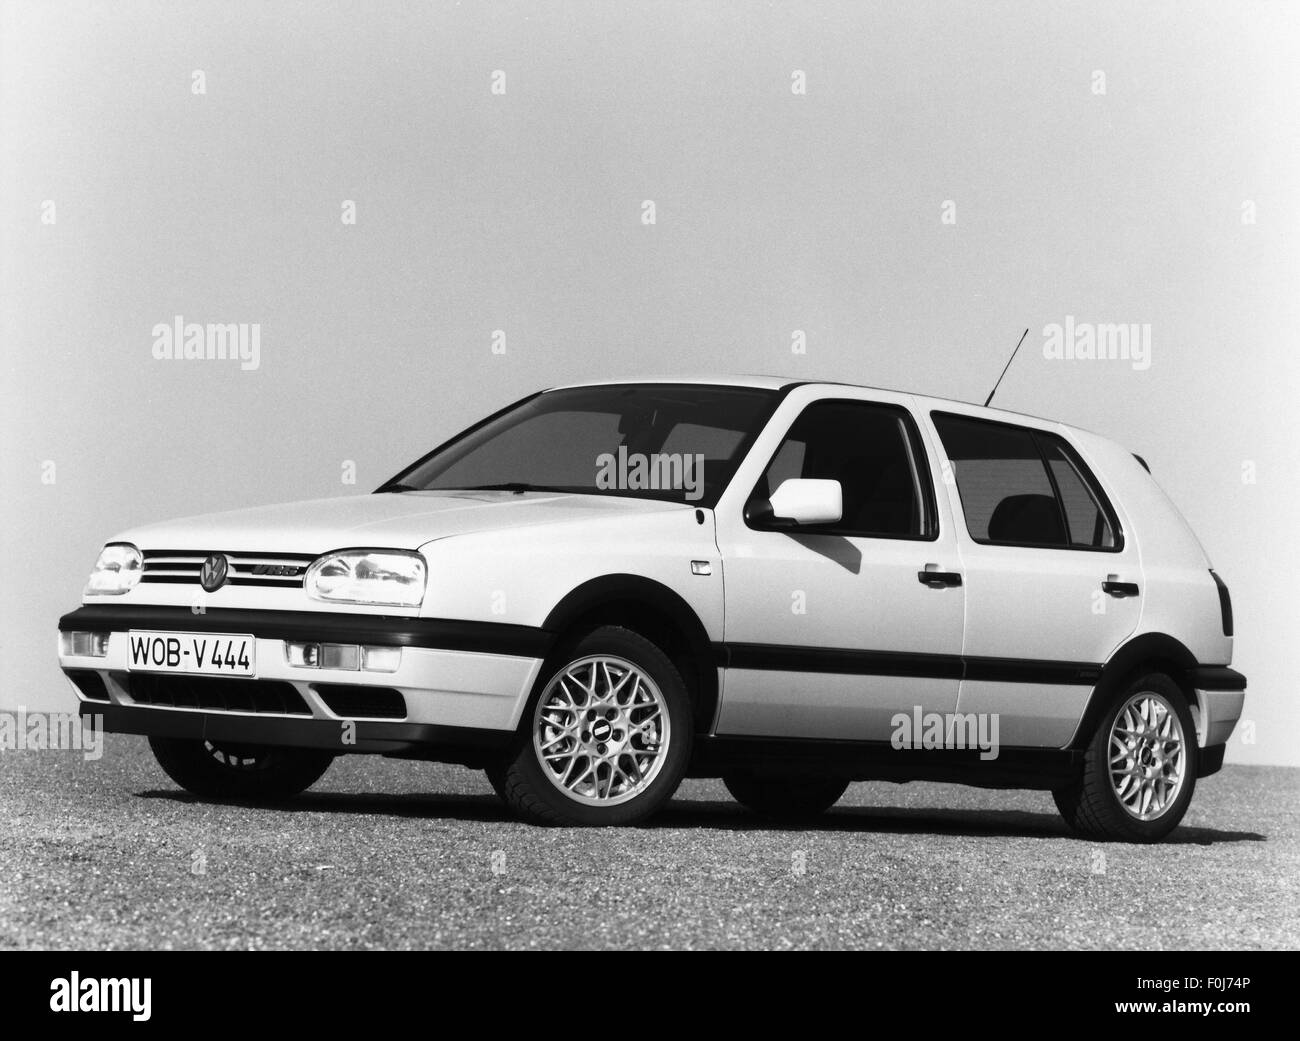 transport / transportation, car, vehicle variants, Volkswagen, VW Golf Mk3 VR6, 1990s, Additional-Rights-Clearences Stock Photo